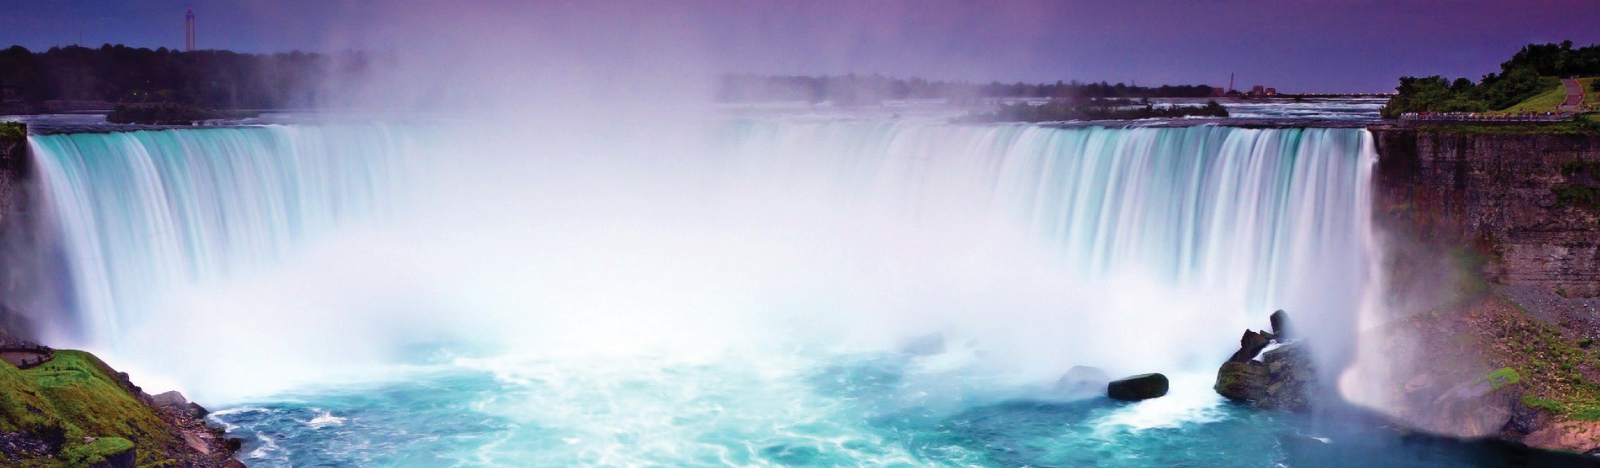 Hotel Packages New Year's Eve Niagara Falls